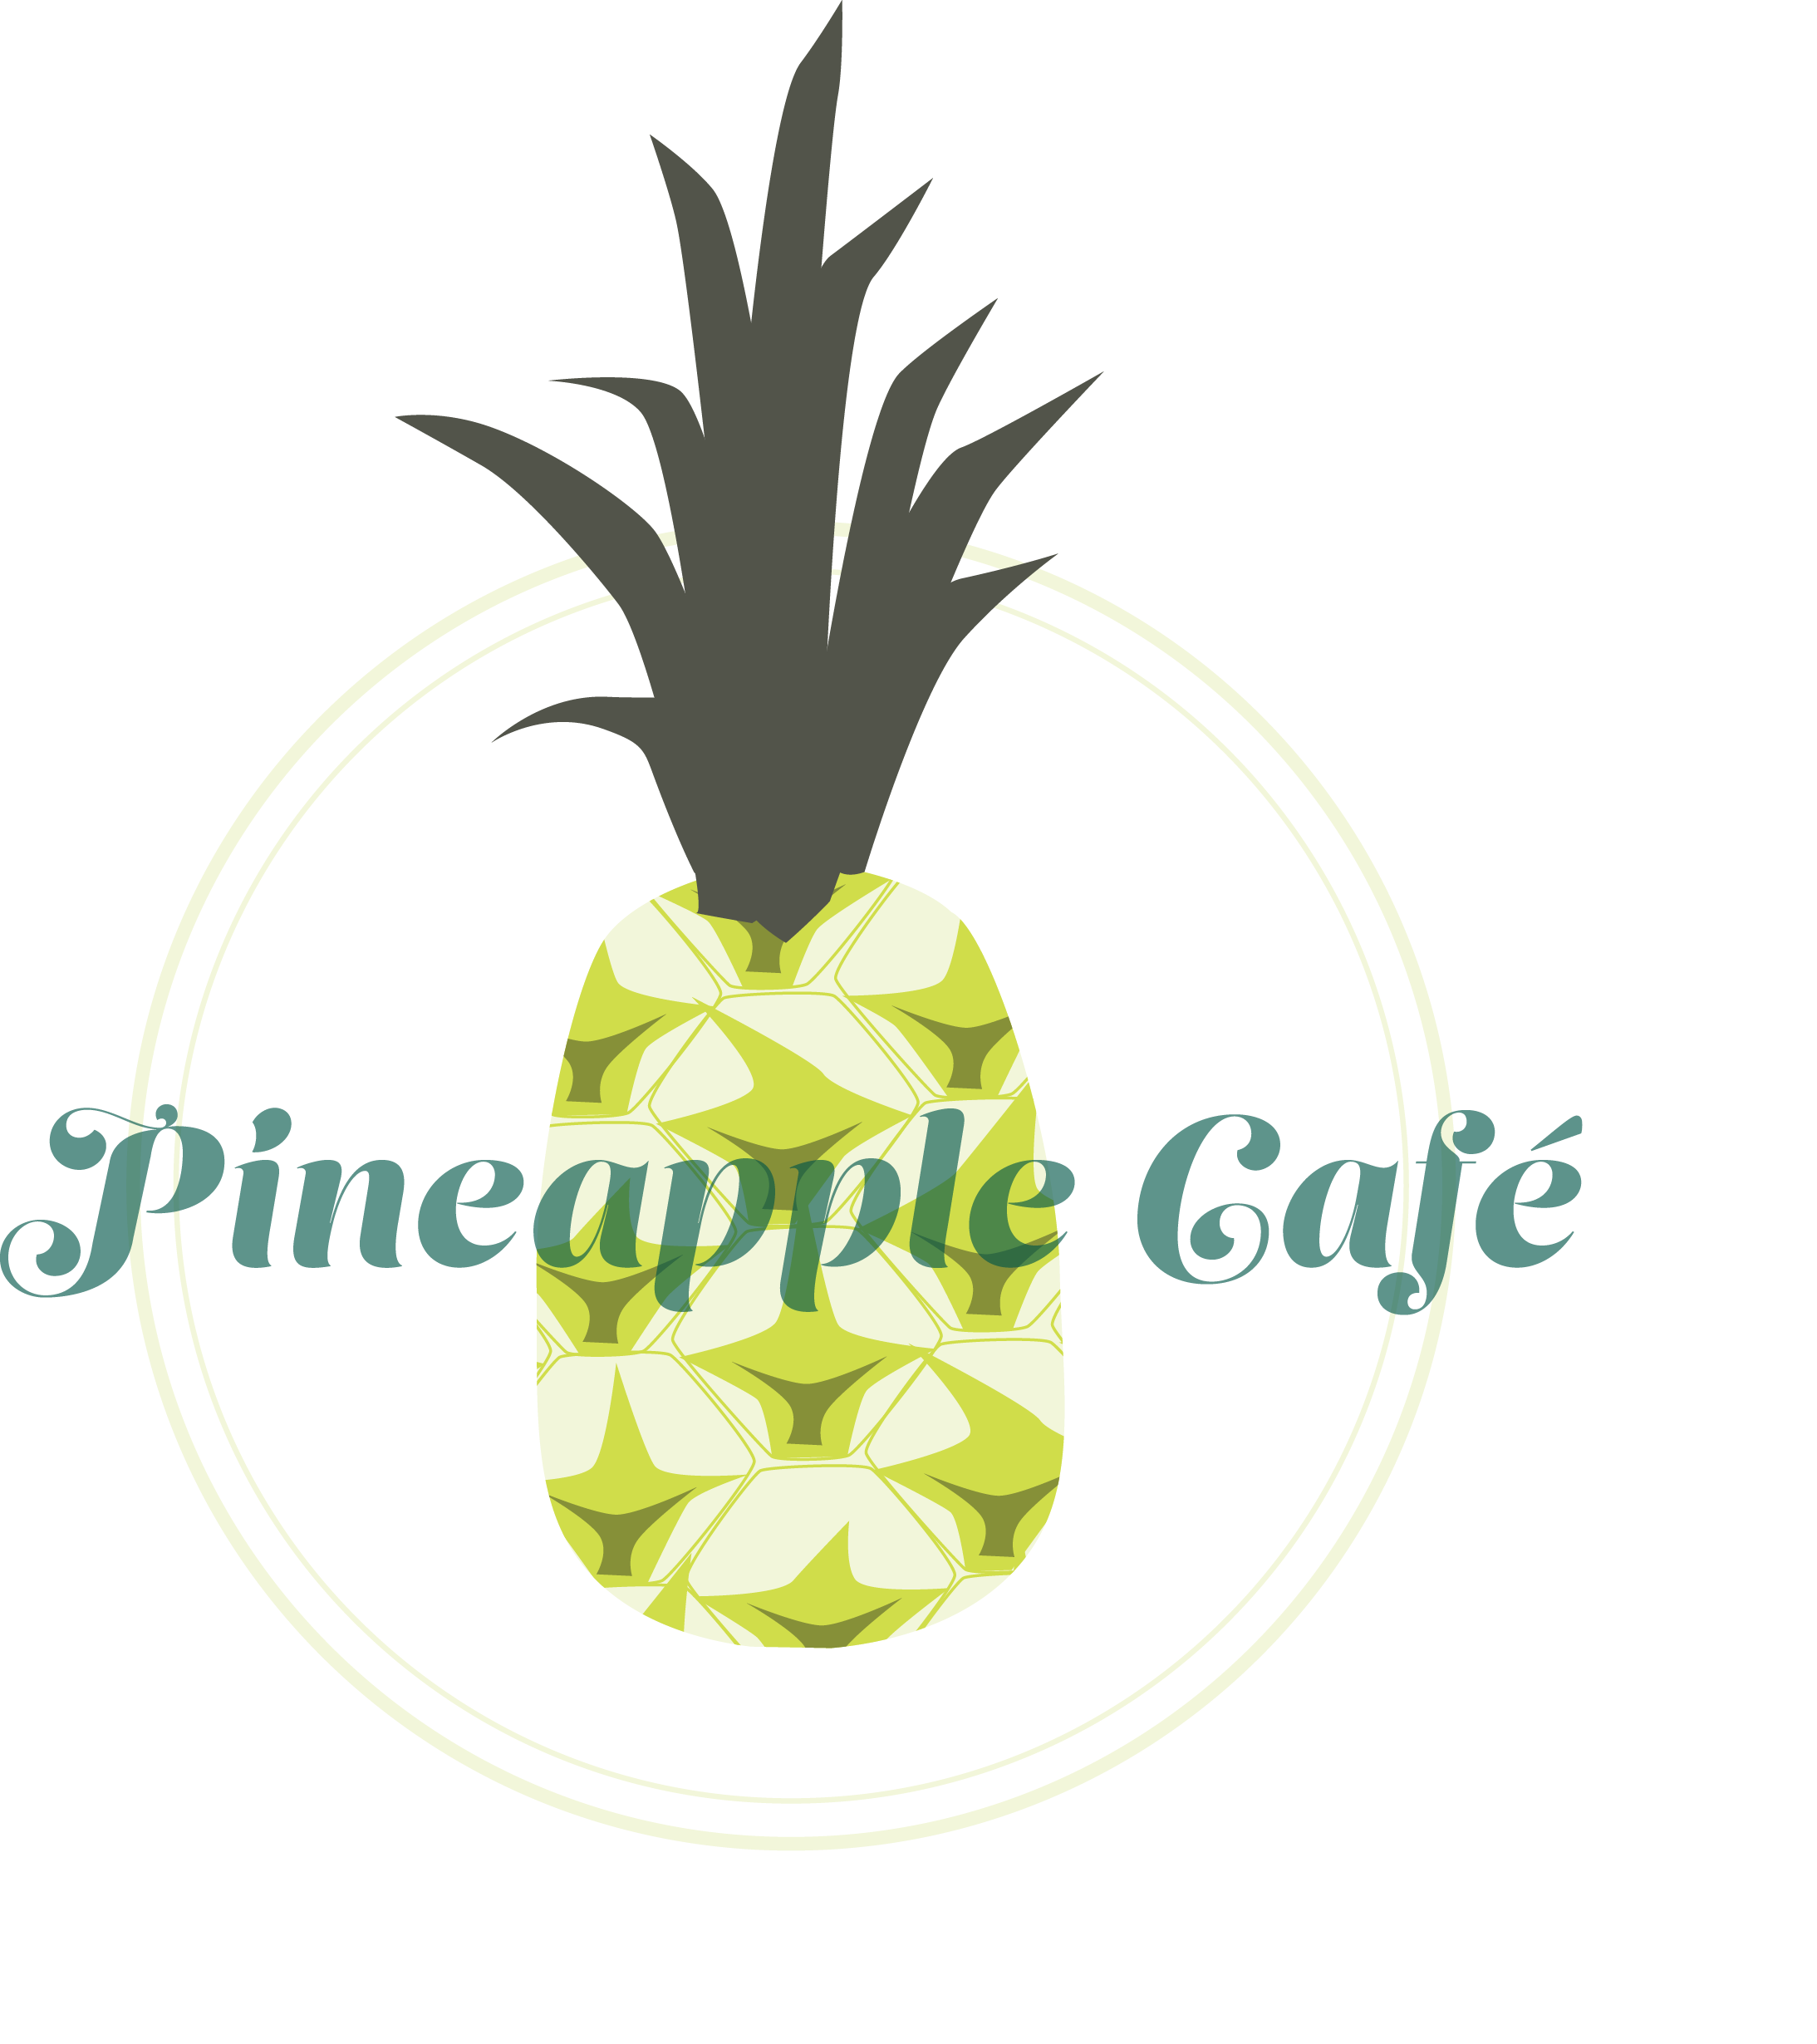 PINEAPPLEcafe logo.png